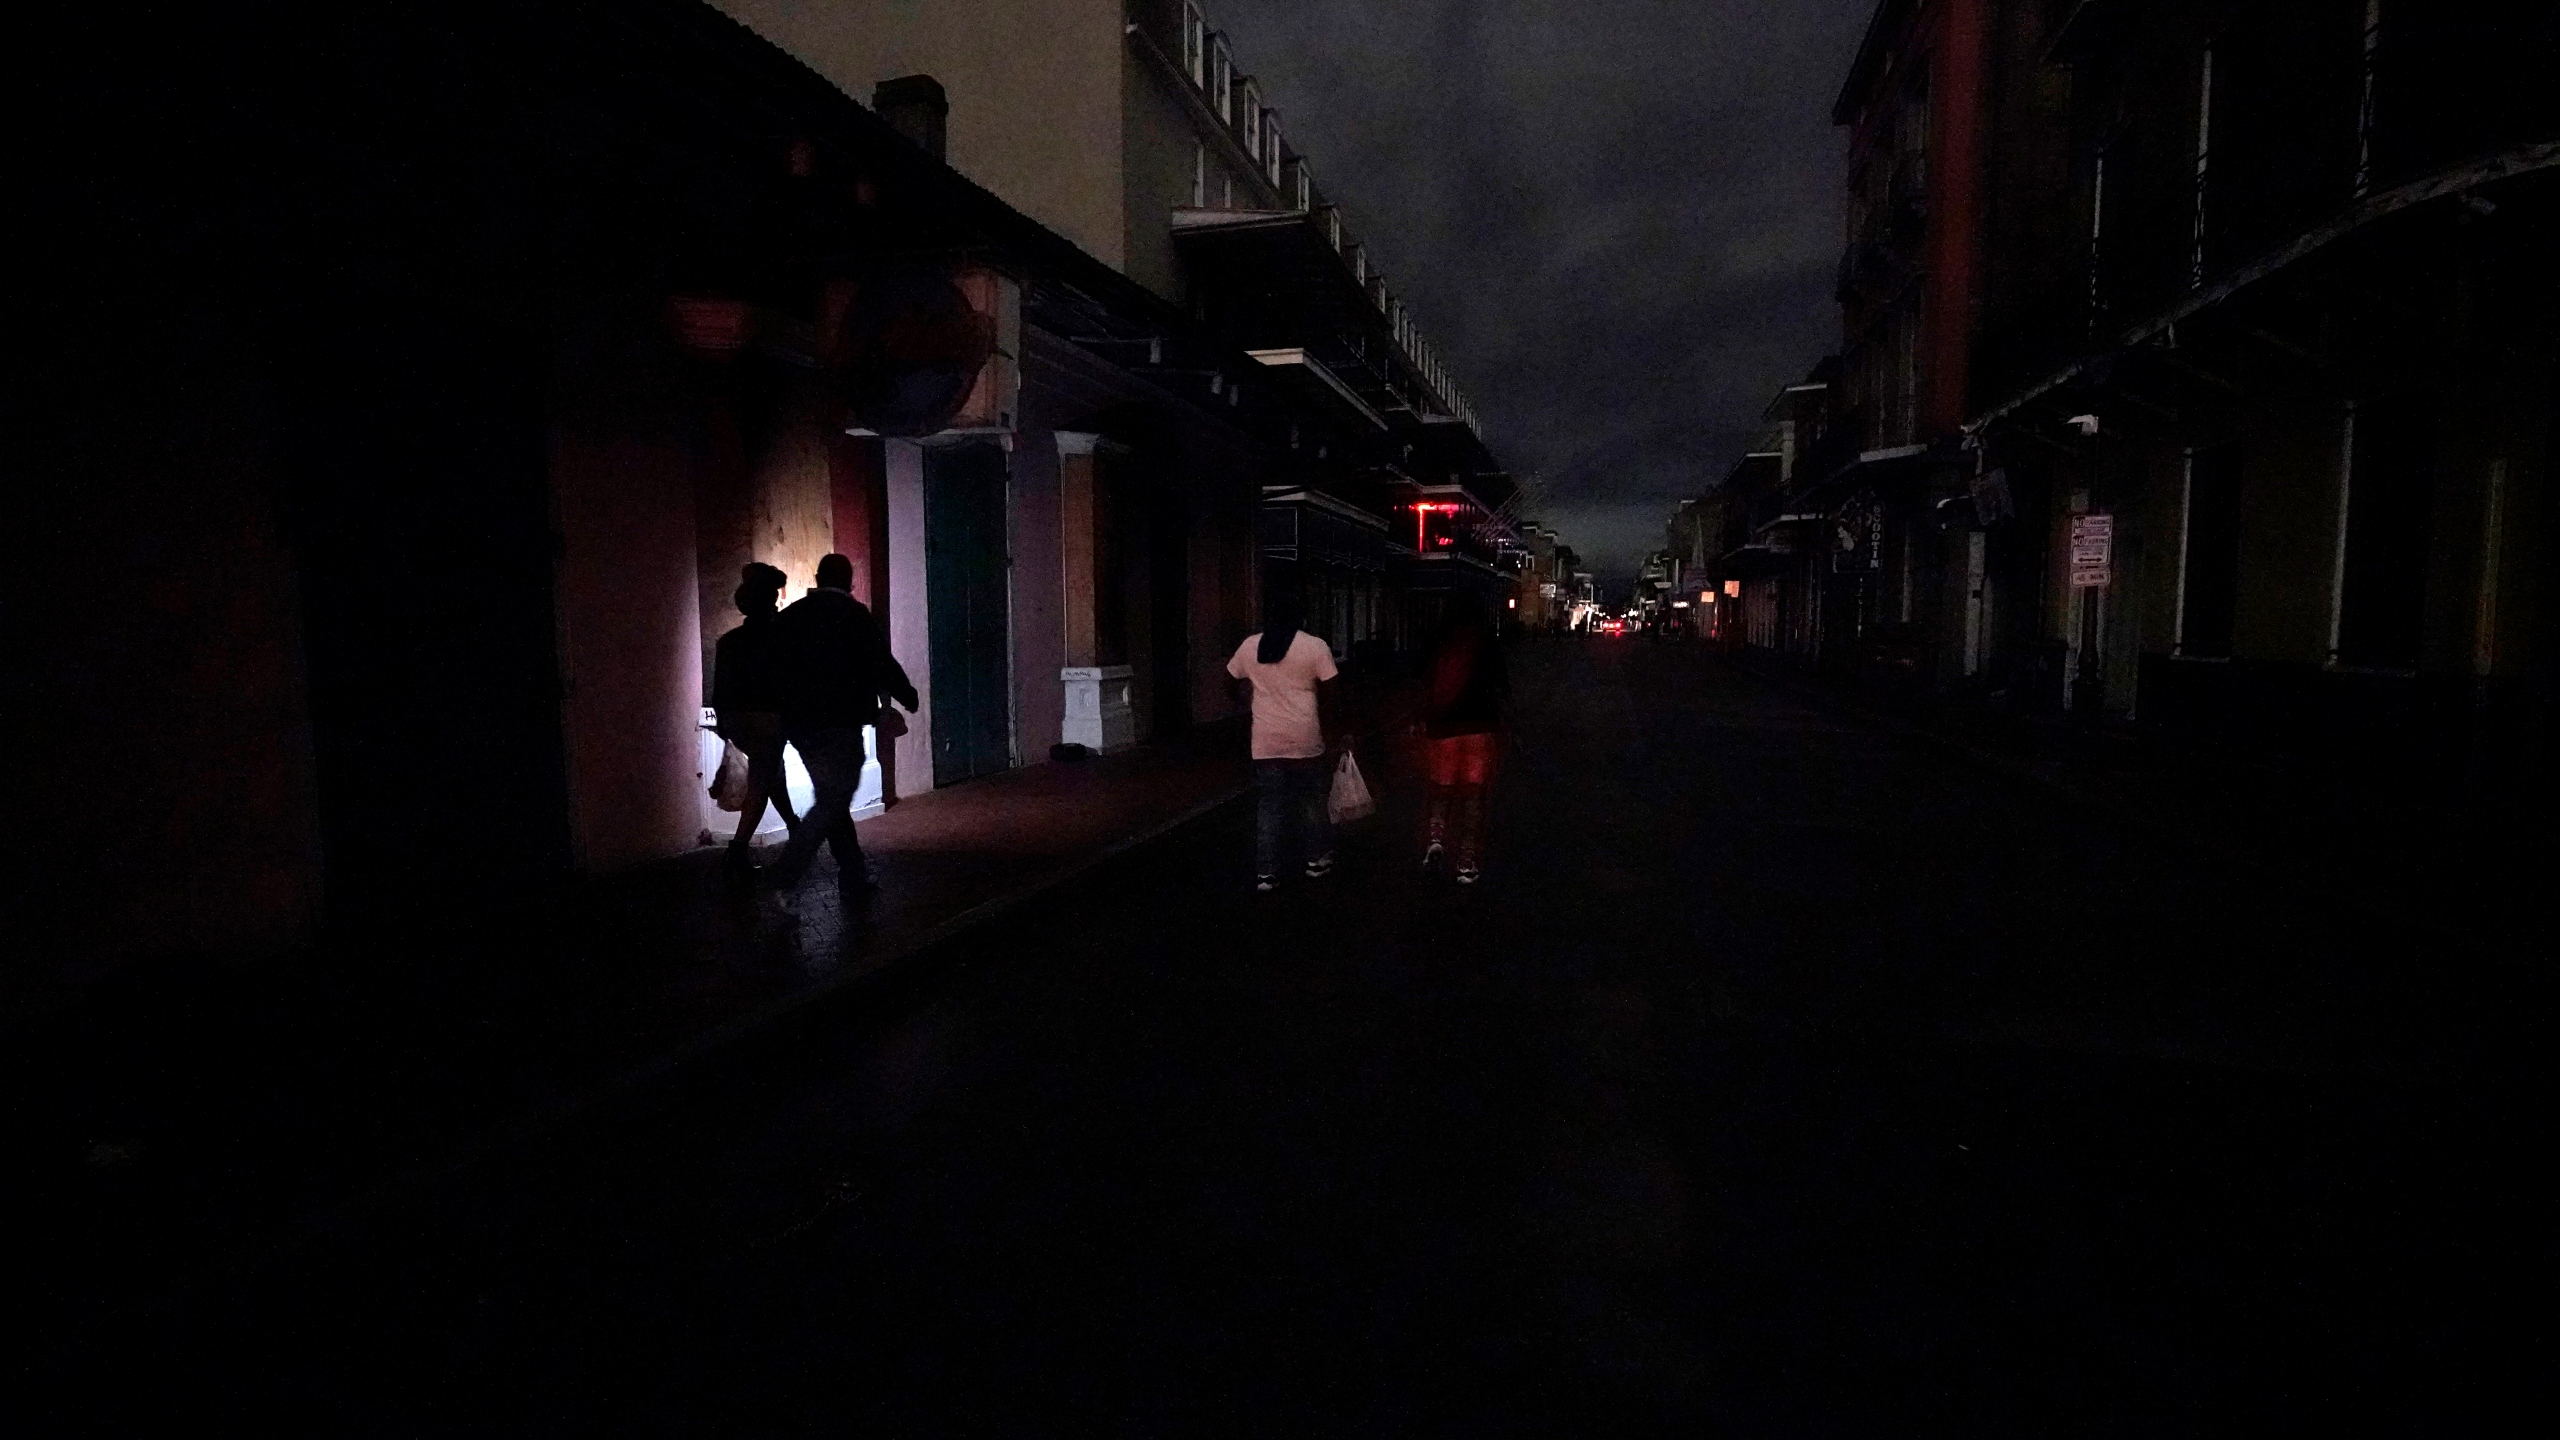 A darkened Bourbon Street is illuminated only by passers-by with lights and car headlights New Orleans' French Quarter on Oct. 28, 2020, after Hurricane Zeta passed through leaving much of the city and metro area without power. (Gerald Herbert / Associated Press)